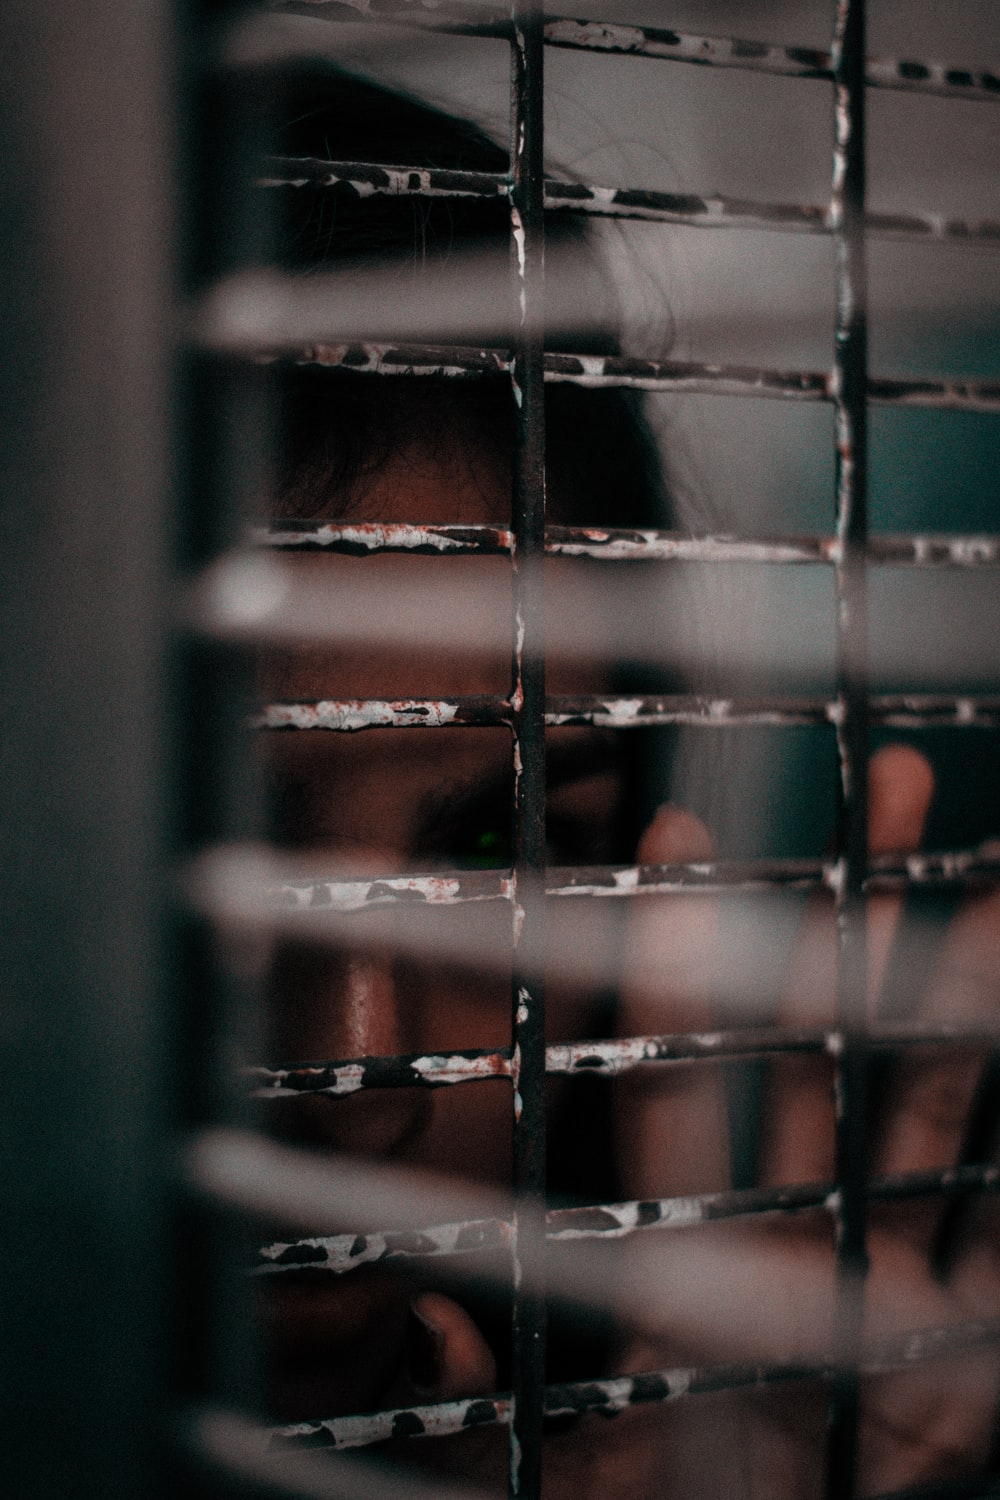 woman looking from a window grille